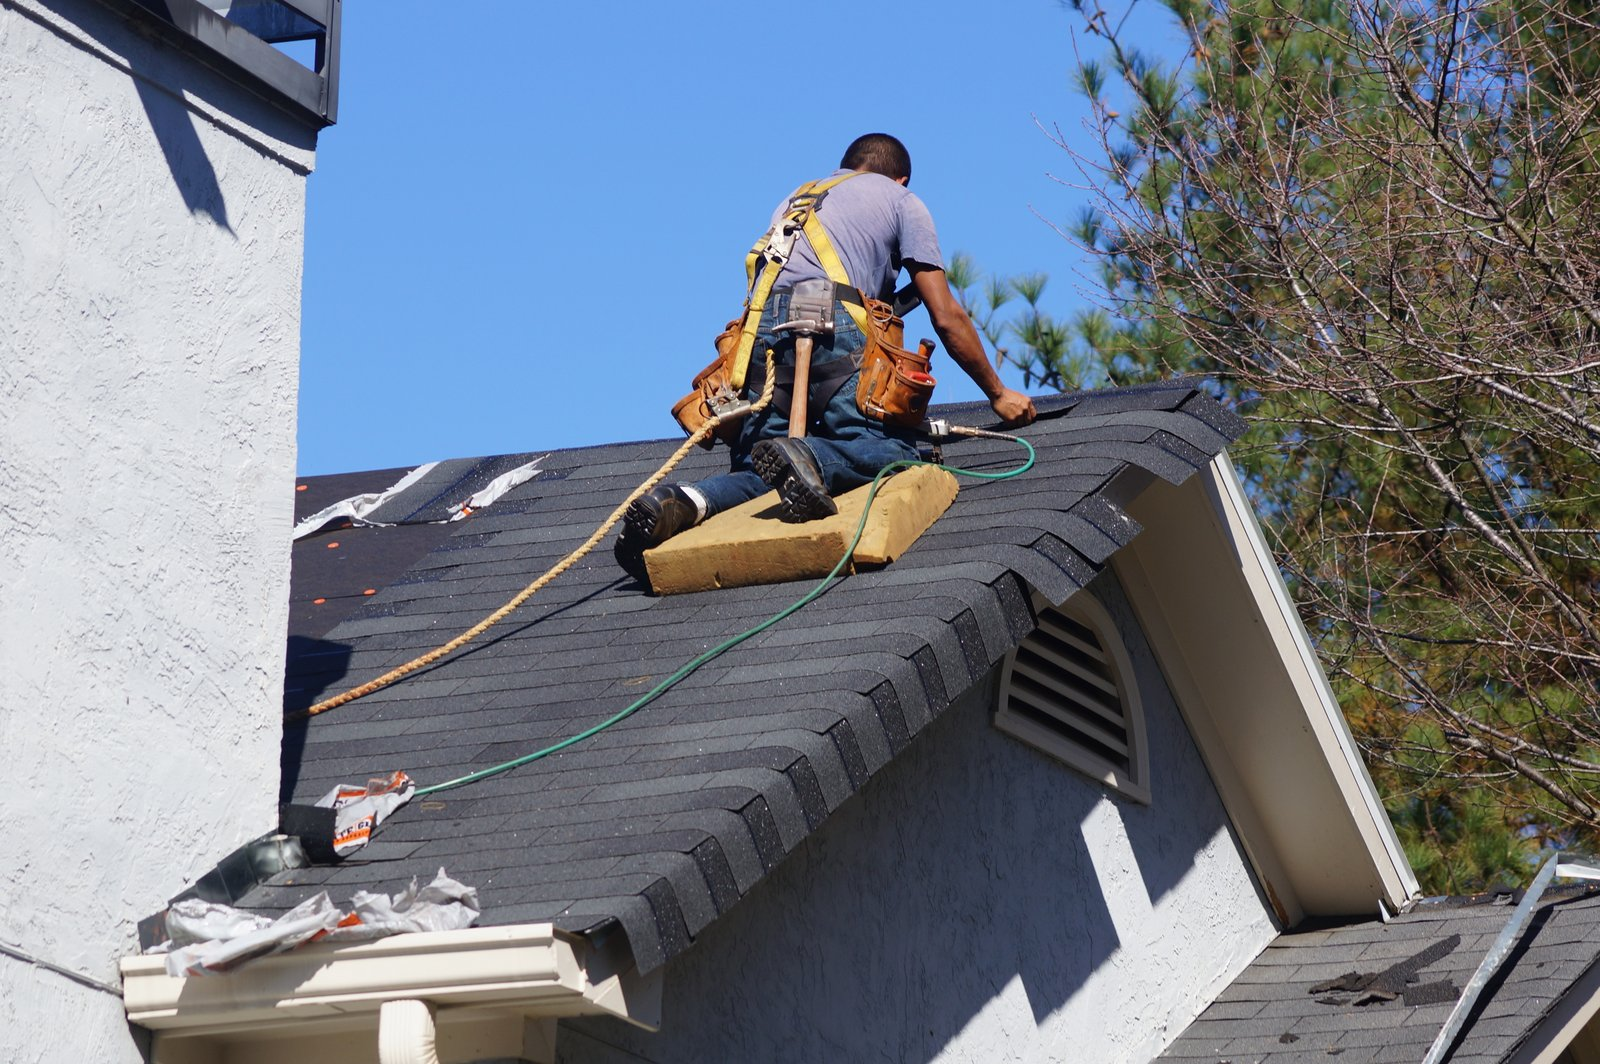 Roofing Contractor Near Me Emeryville, CA 94608